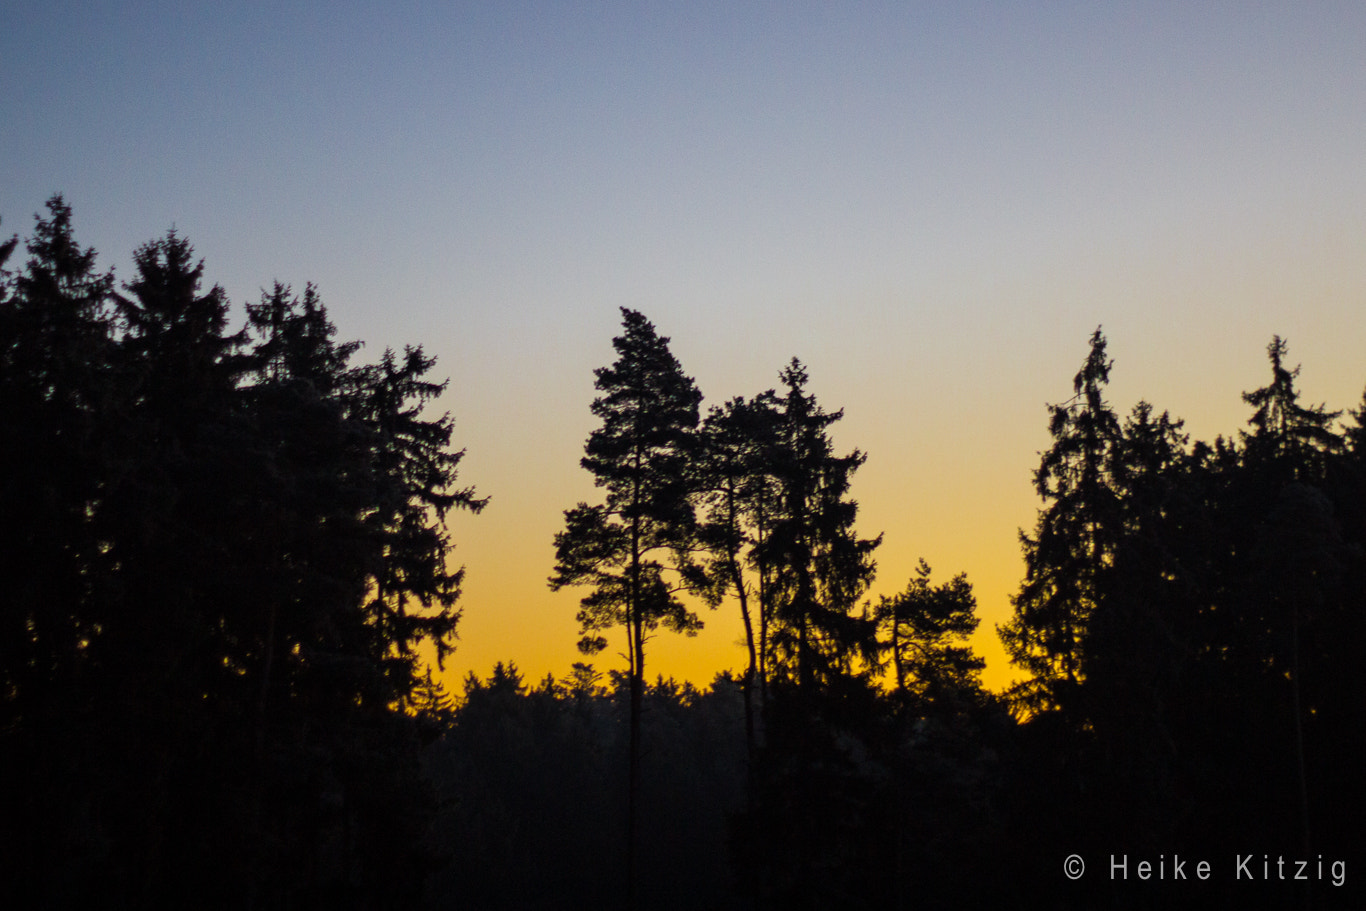 Photograph Sunrise with trees by Heike Kitzig on 500px